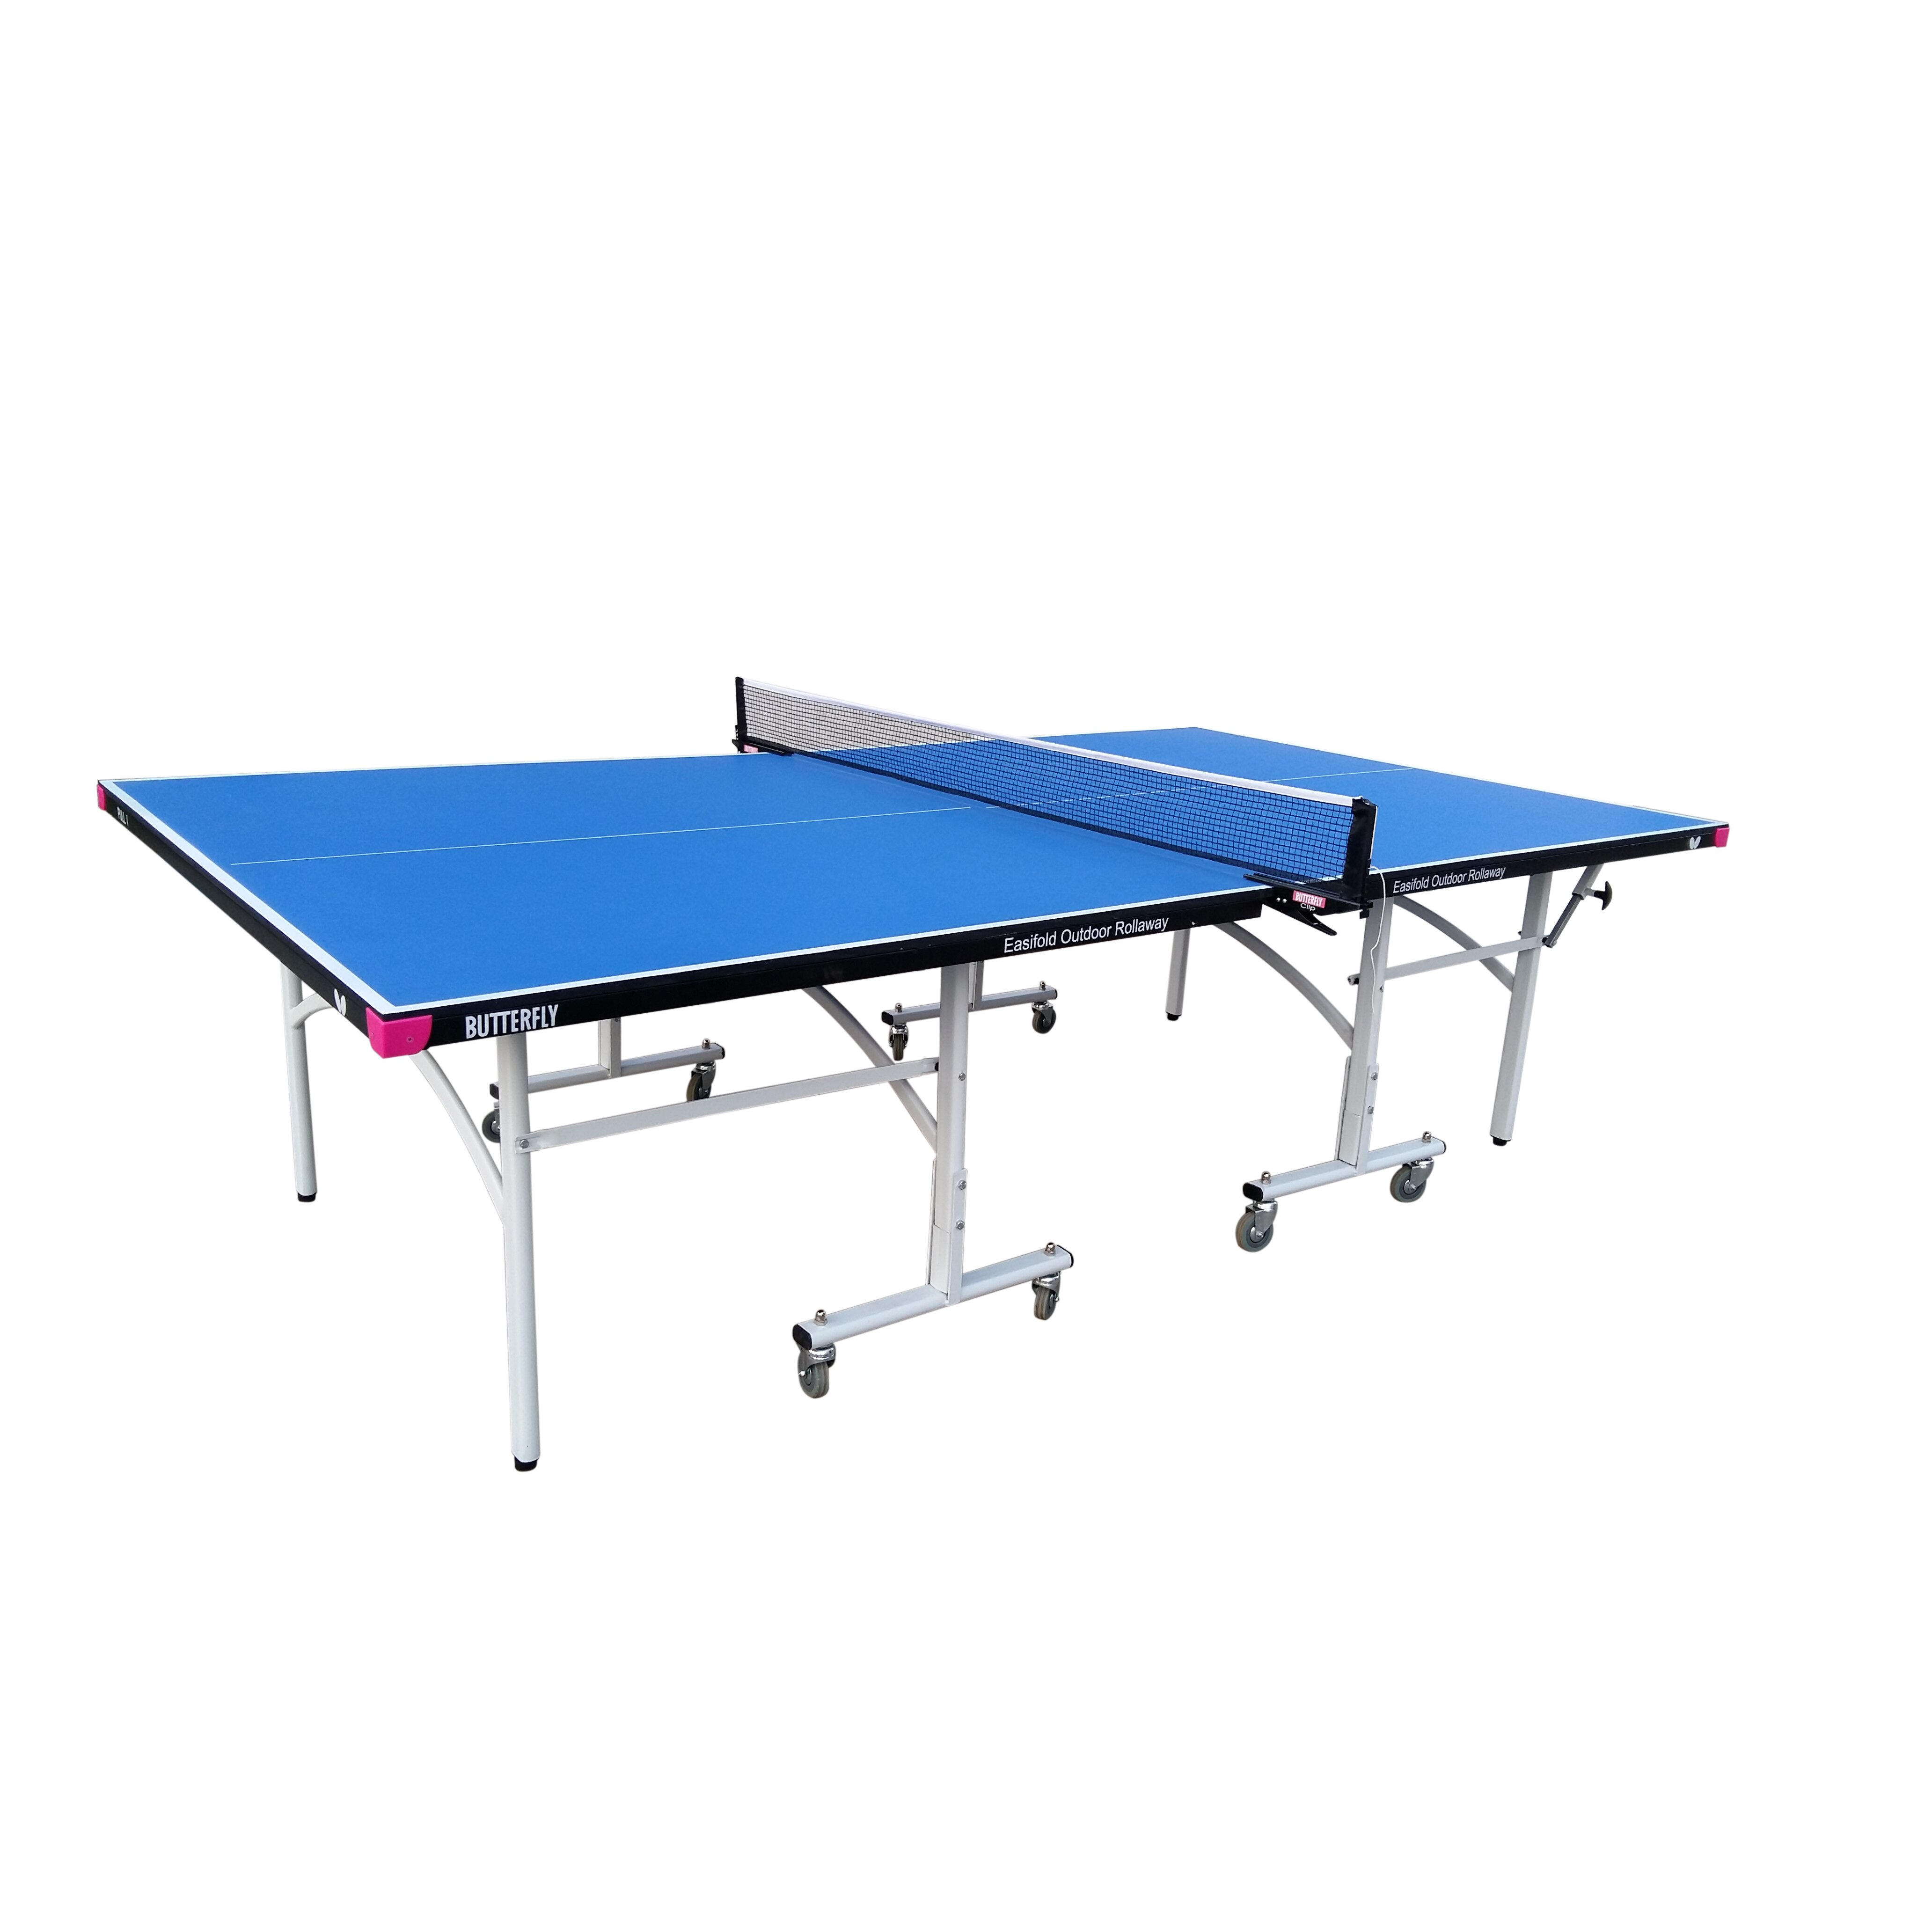 Butterfly easifold outdoor table tennis table wayfair - Weatherproof table tennis table ...